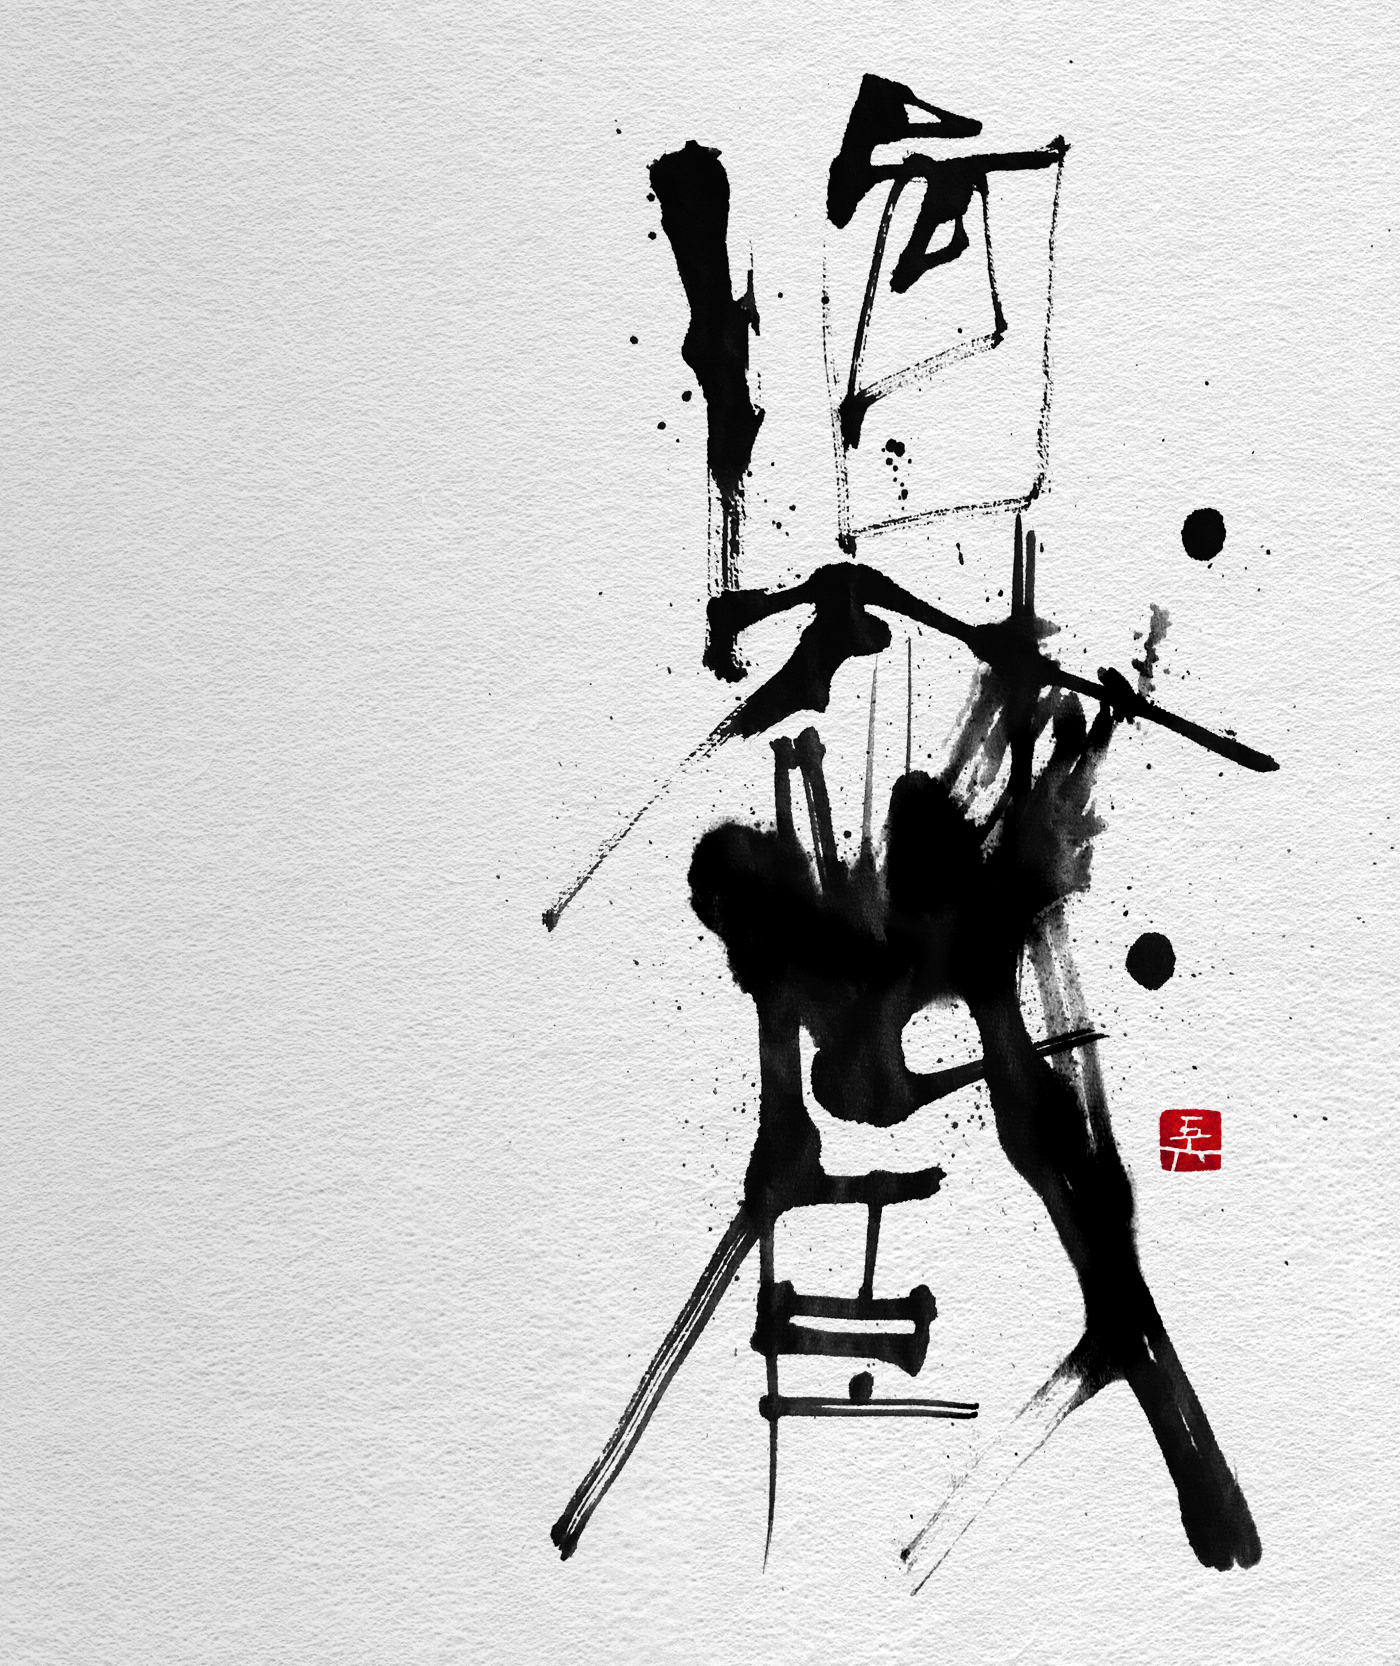 眞蔵 真蔵 shinzo 書道作品 japaneseart japanesecalligraphy